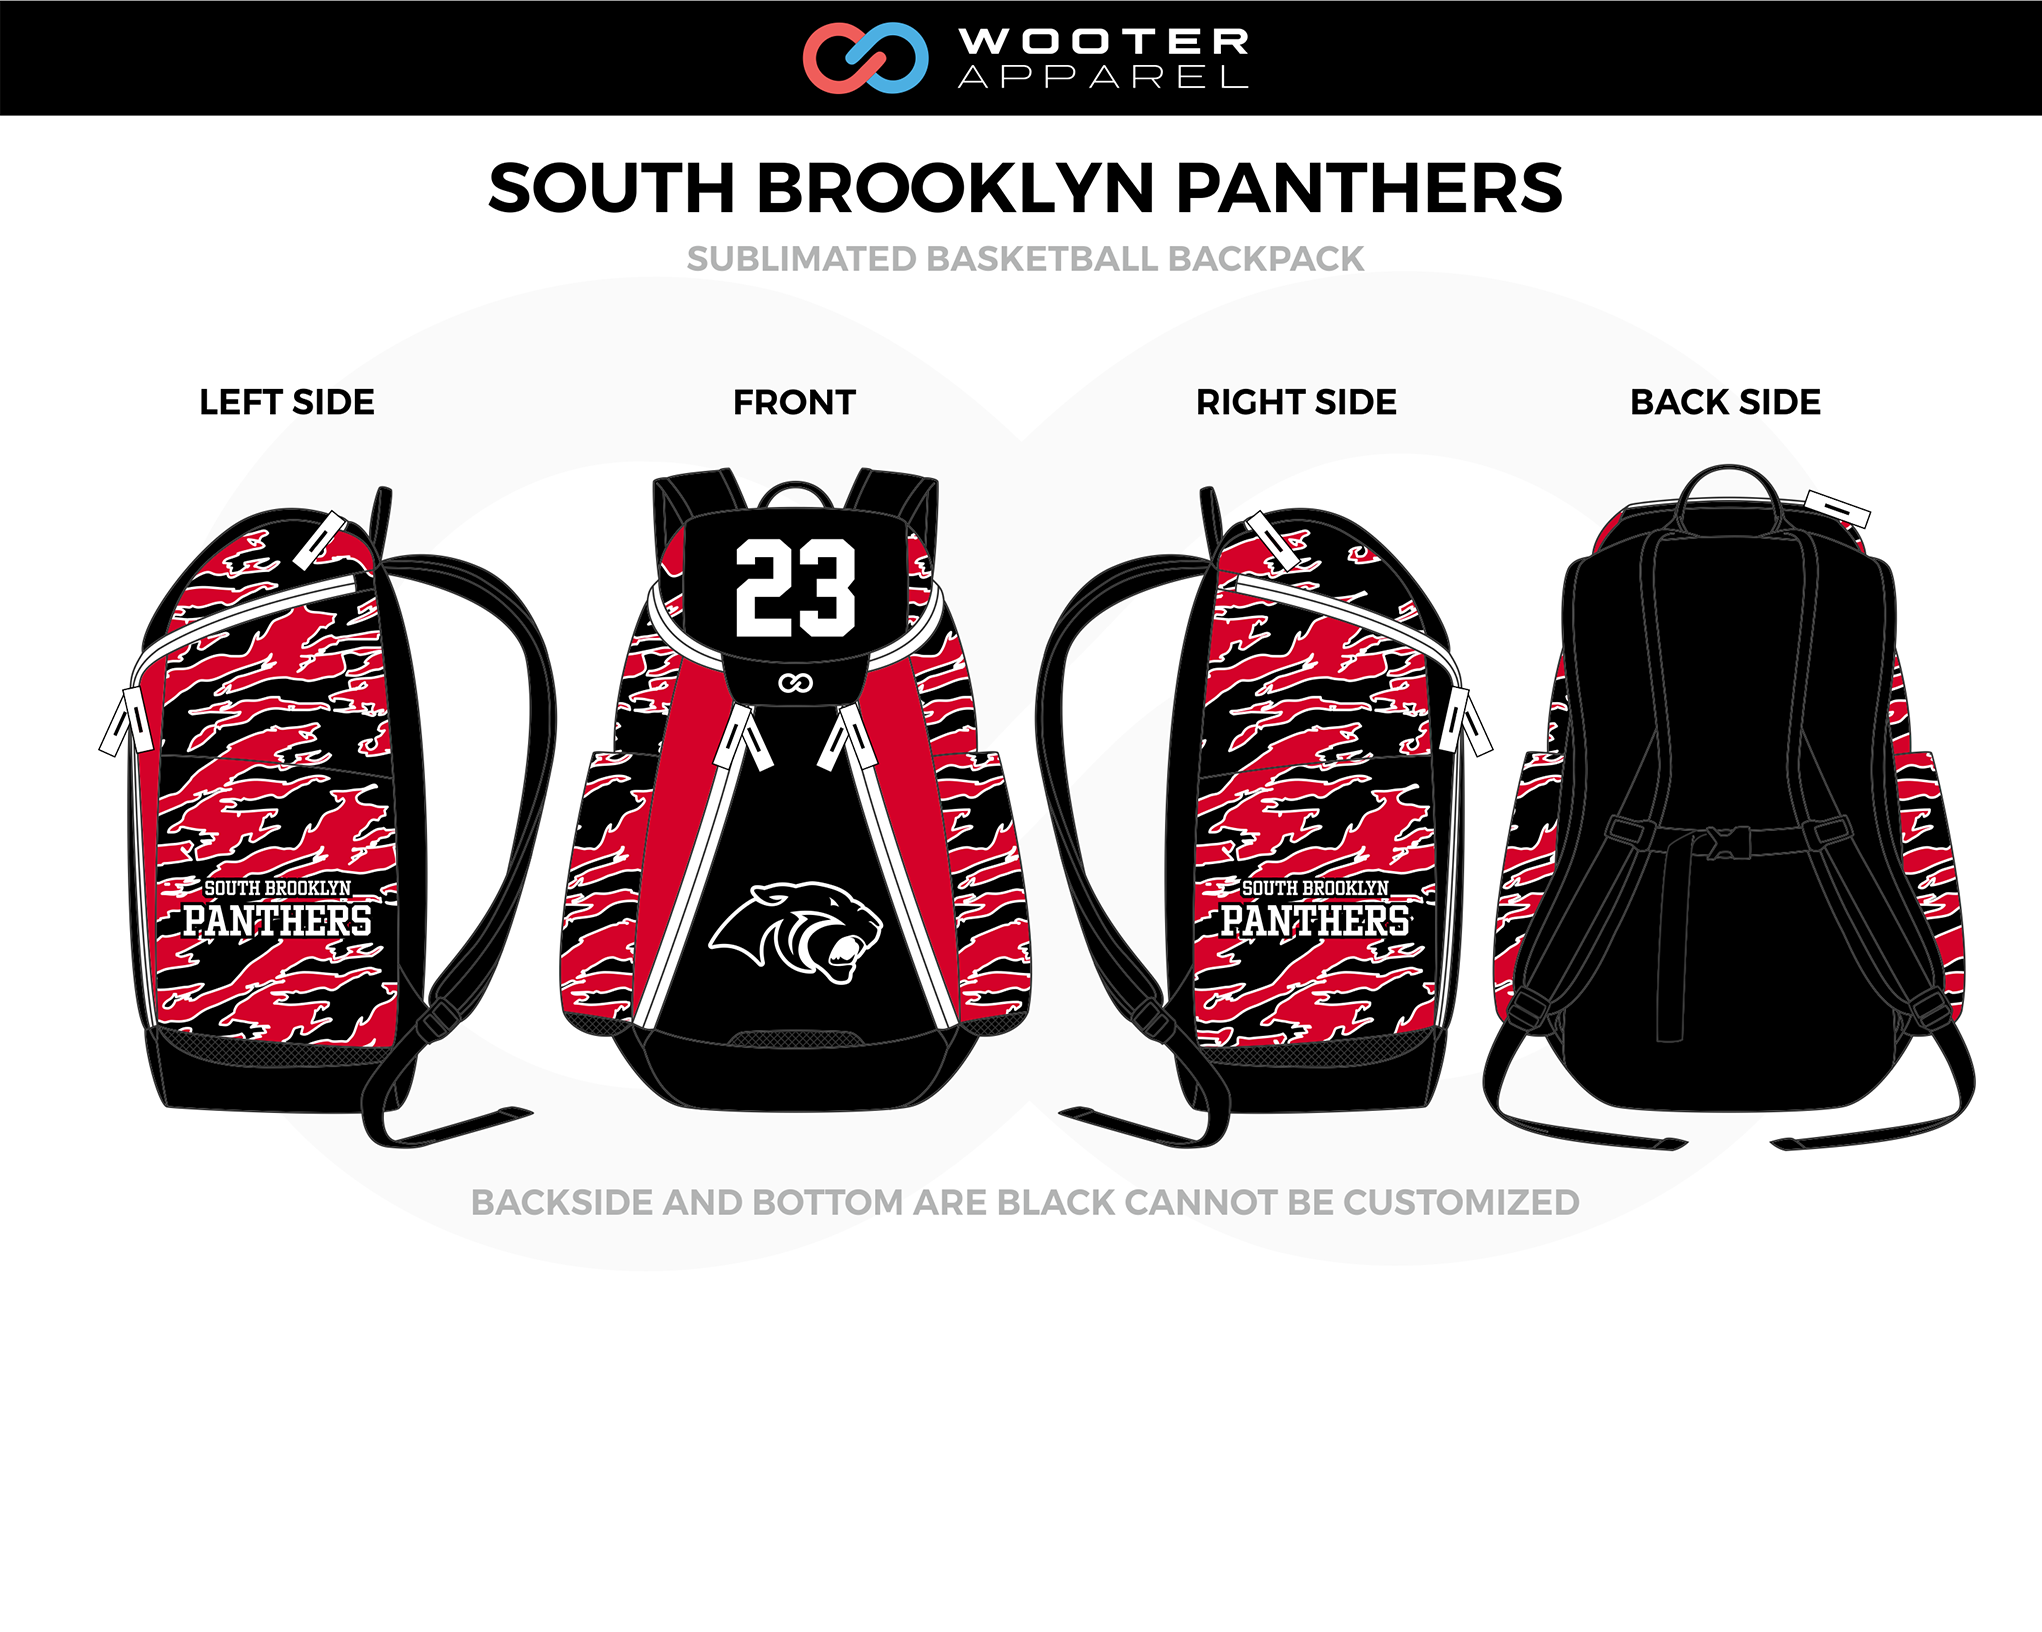 SOUTH BROOKLYN PANTHERS Red Black White Basketball Backpack